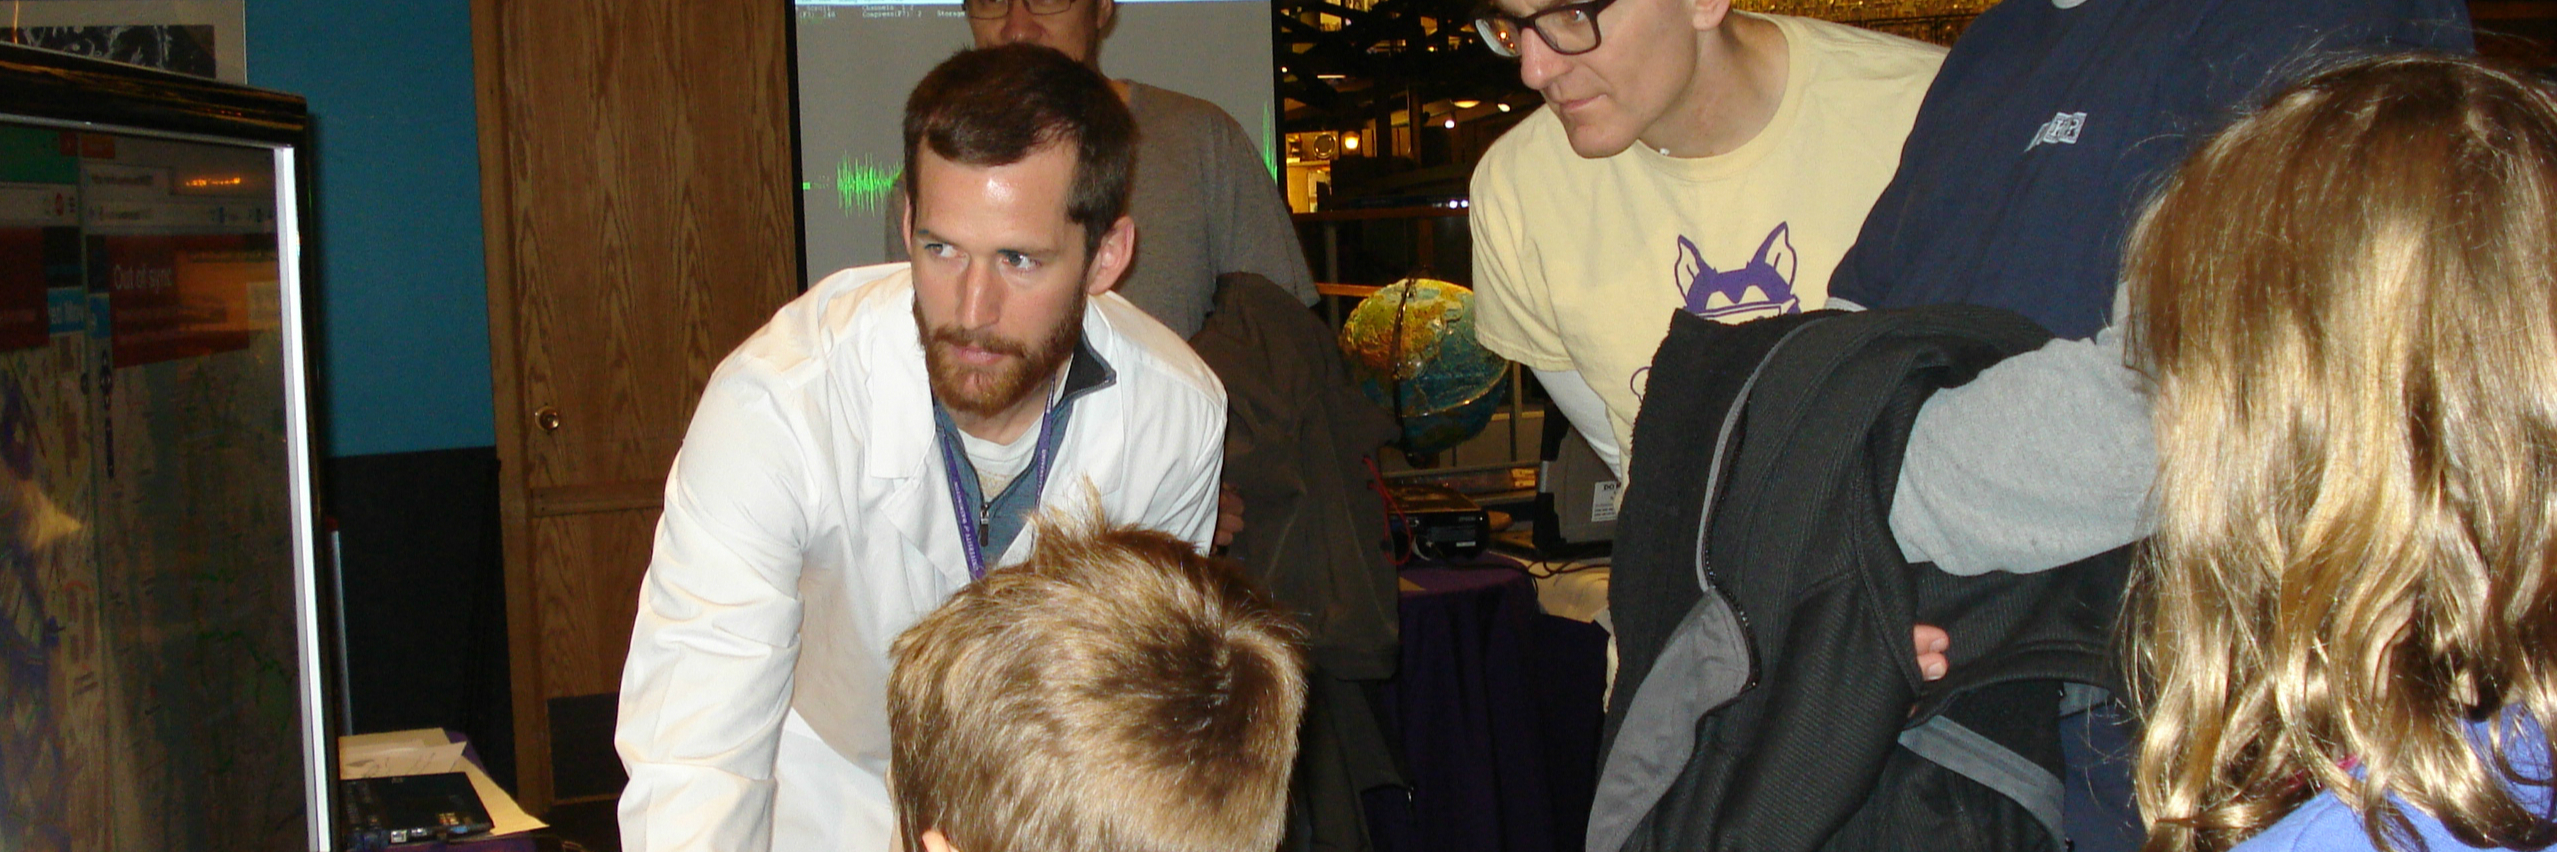 Paws on Science 2014